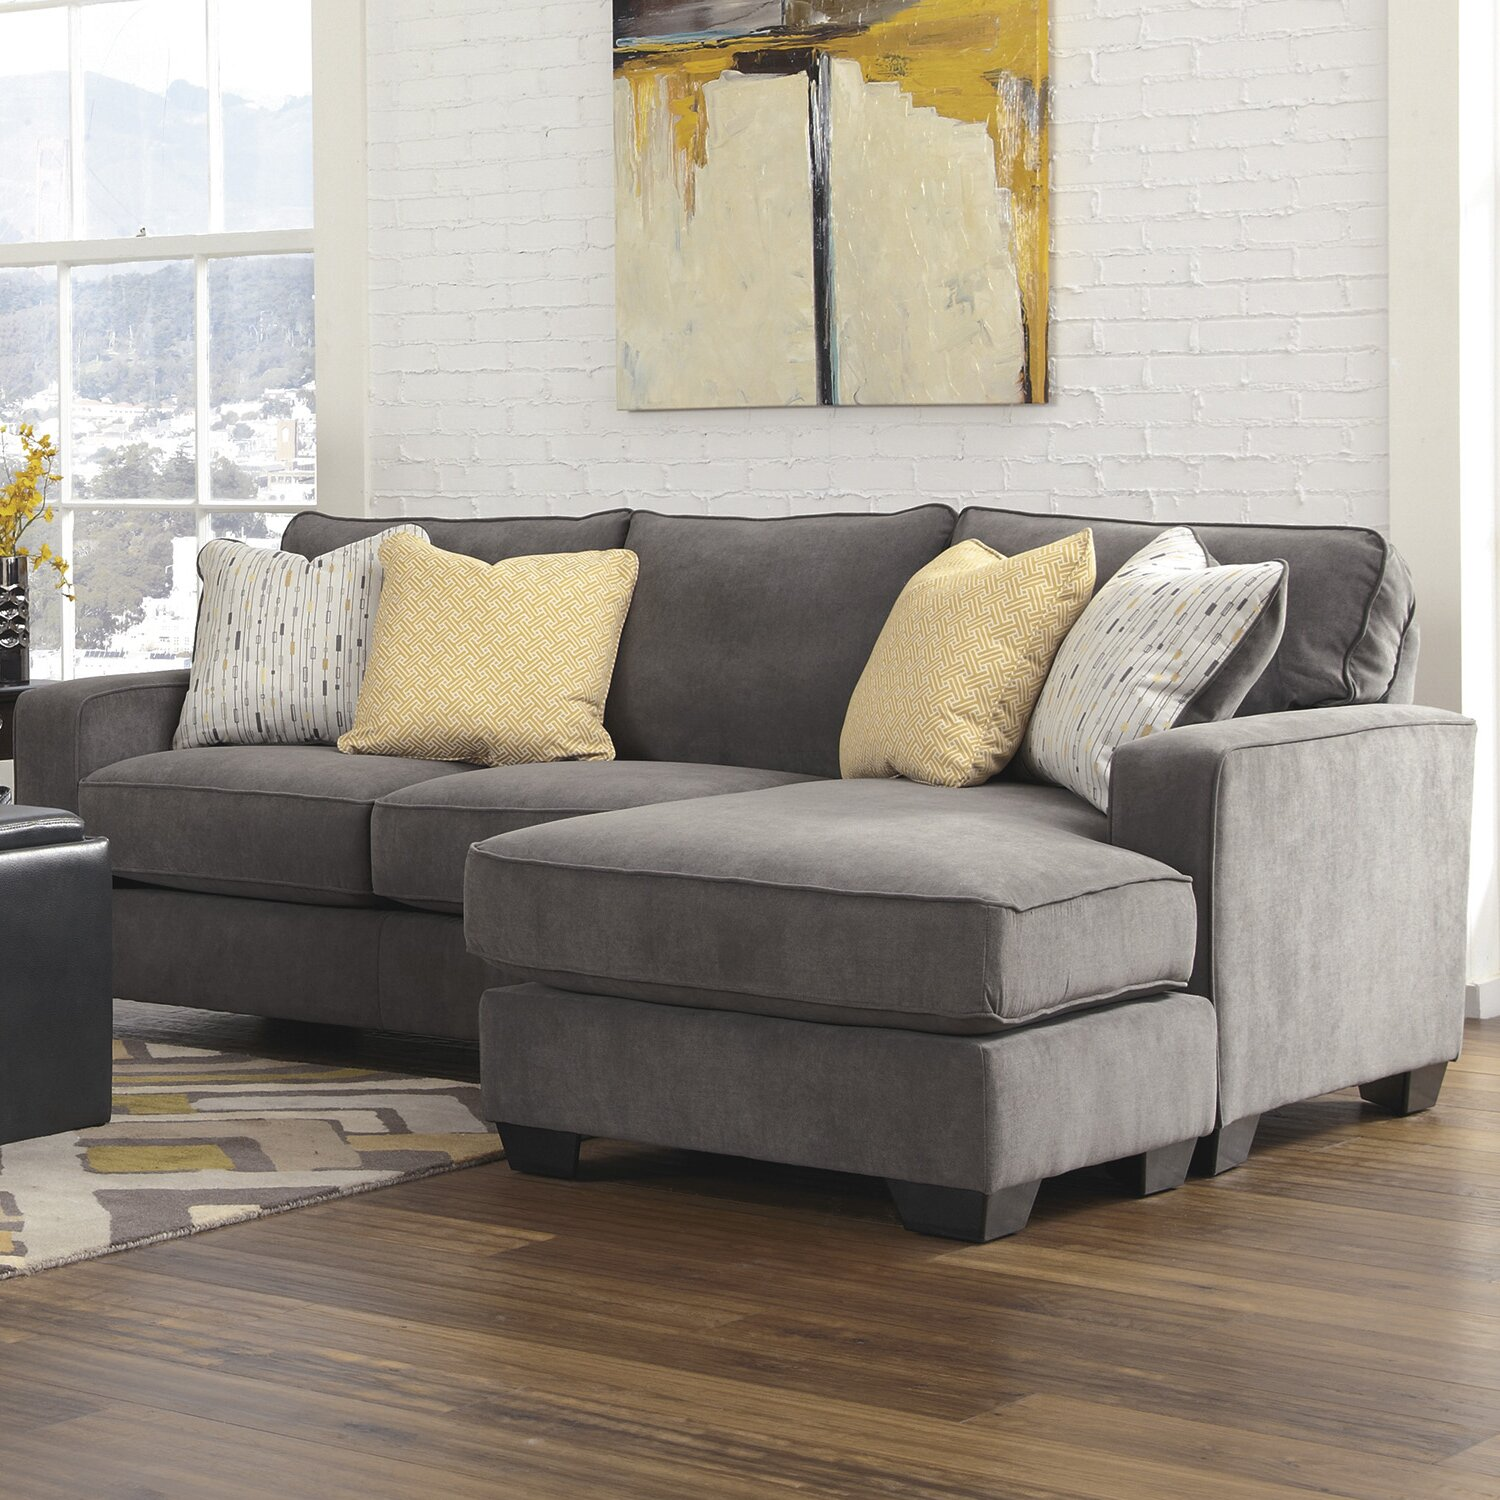 Mercer41 Kessel Reversible Chaise Sectional & Reviews